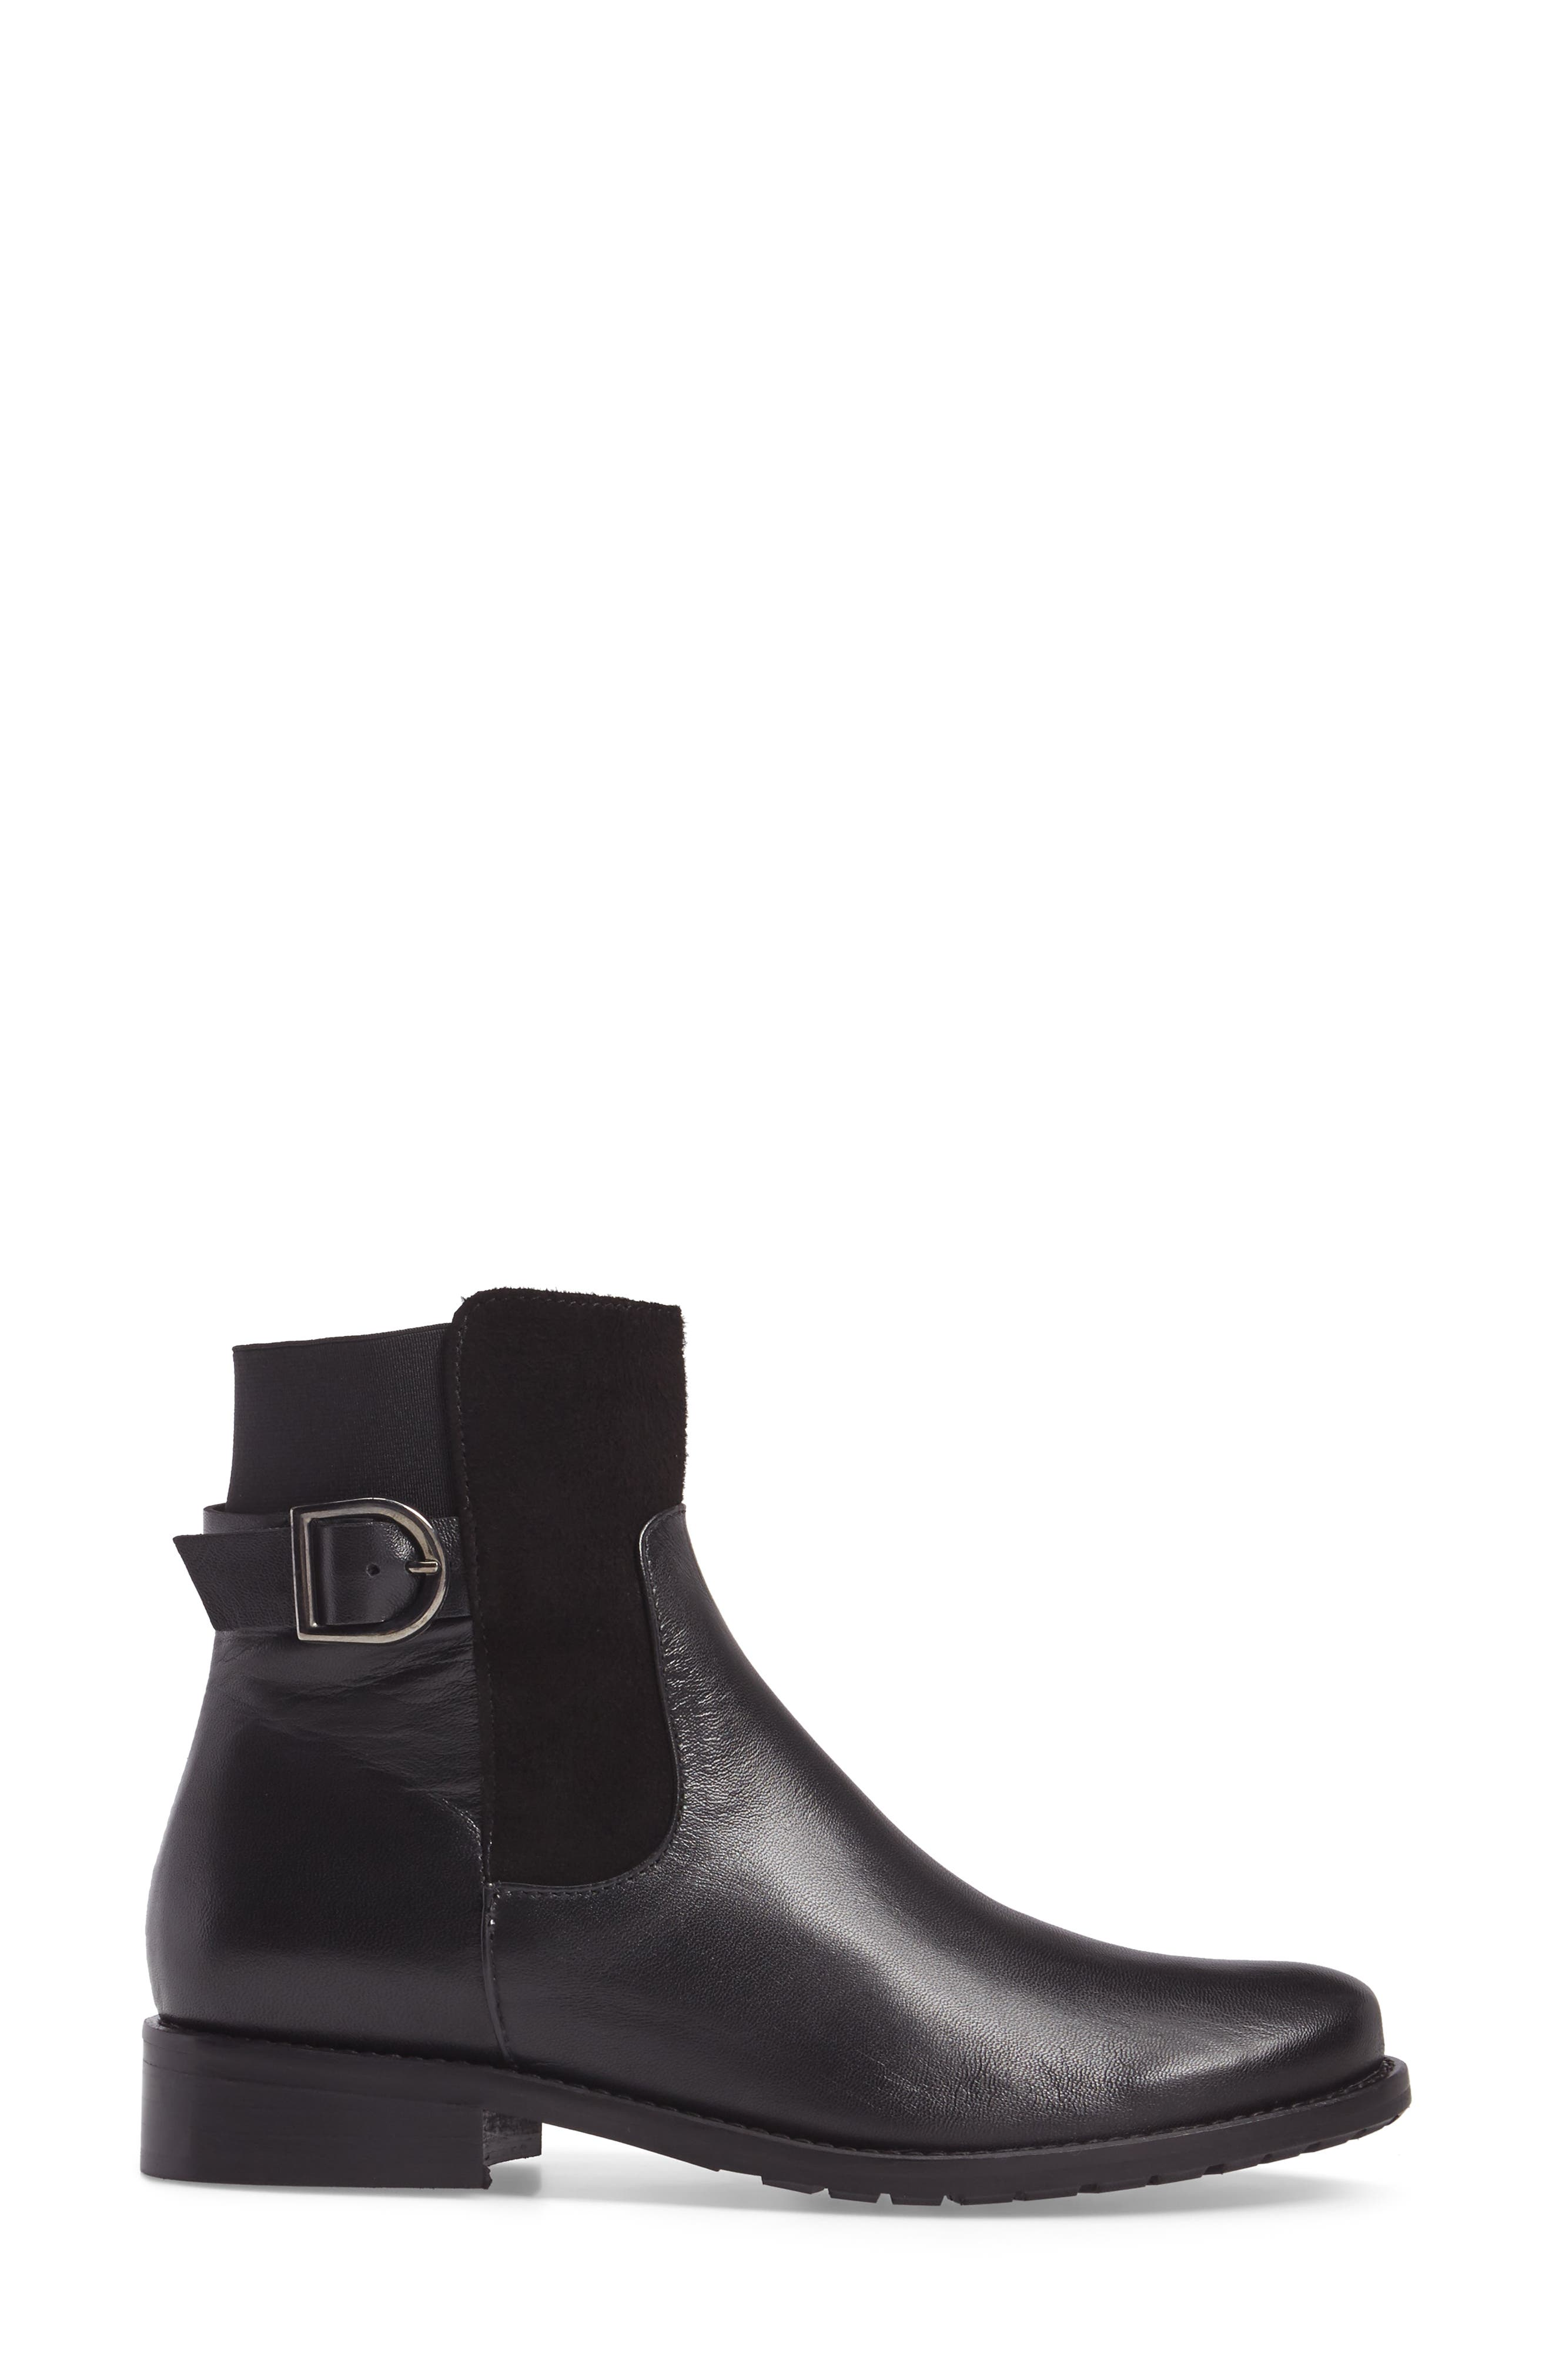 Samira Bootie,                             Alternate thumbnail 3, color,                             Black Leather